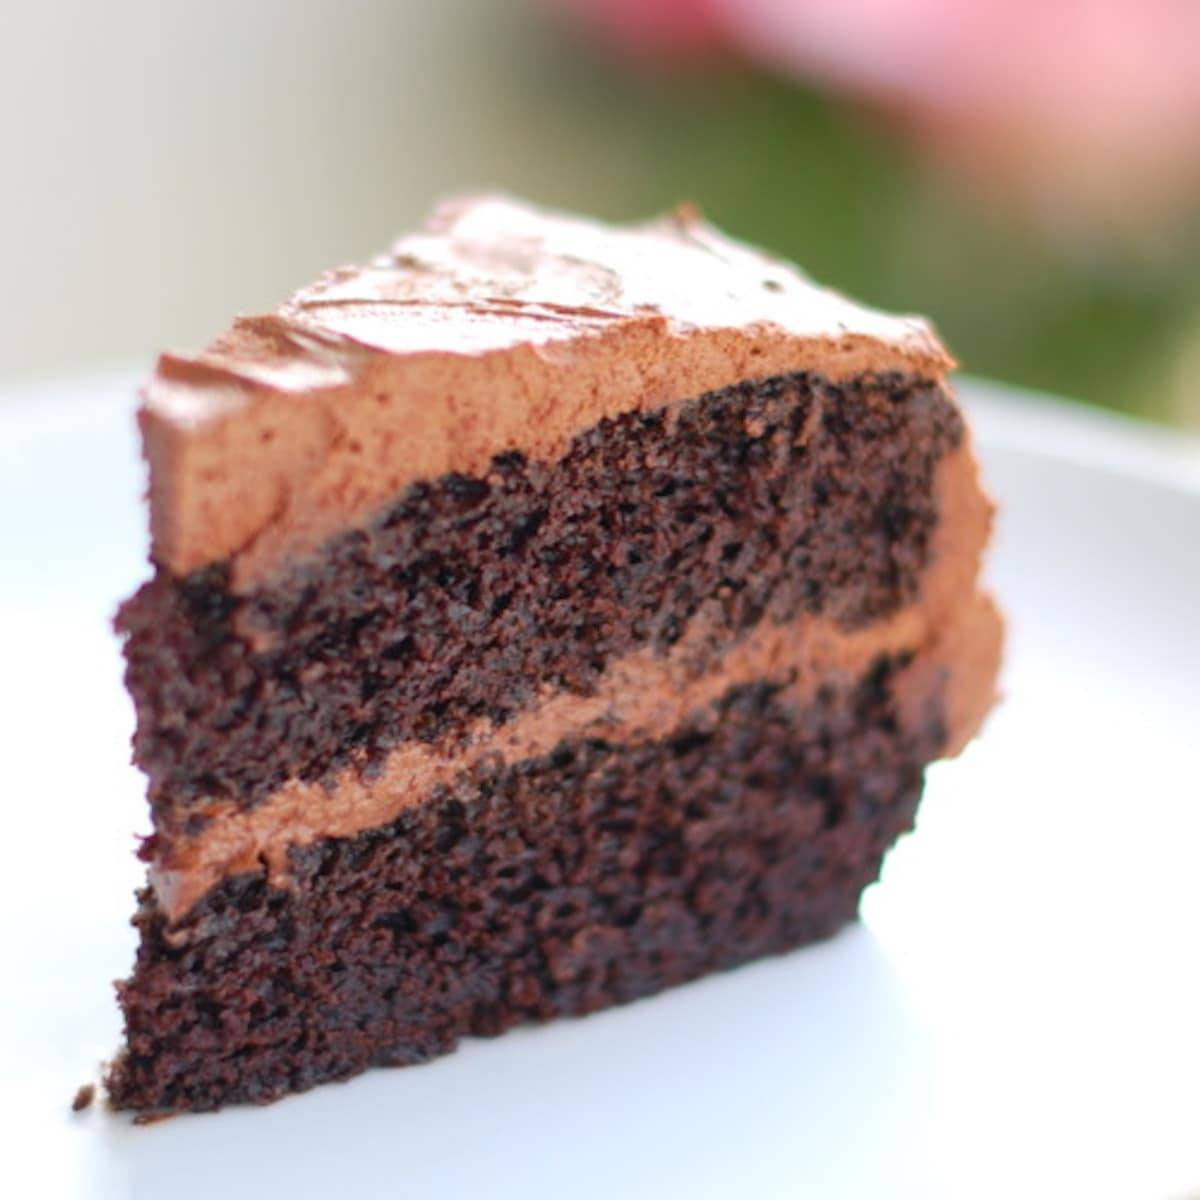 Slice of double chocolate cake with buttercream frosting.